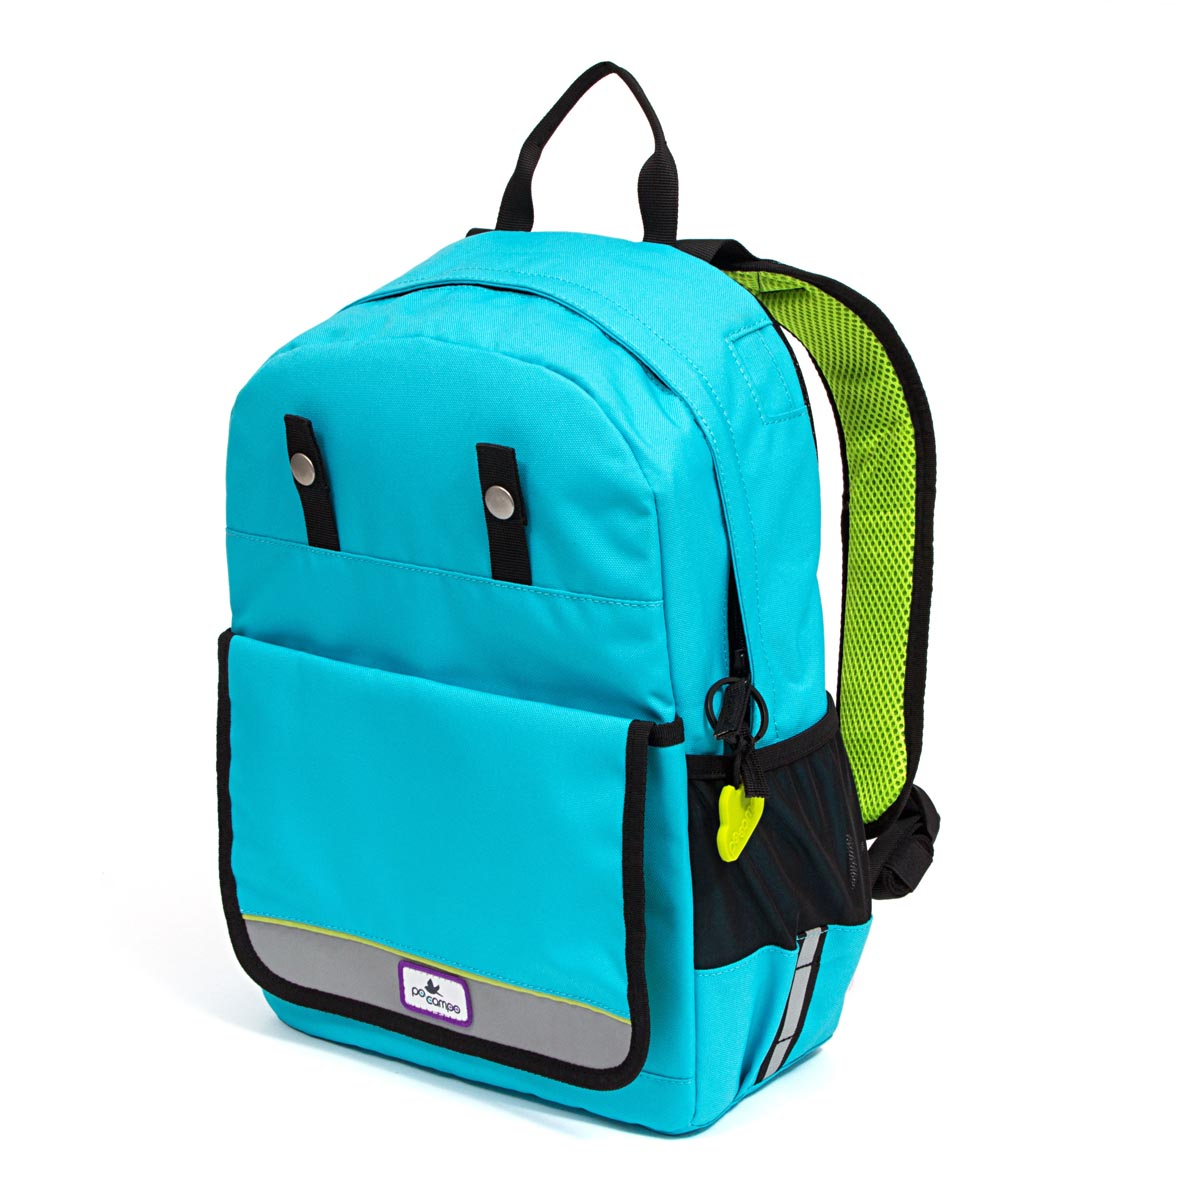 Po Campo kids backpack pannier